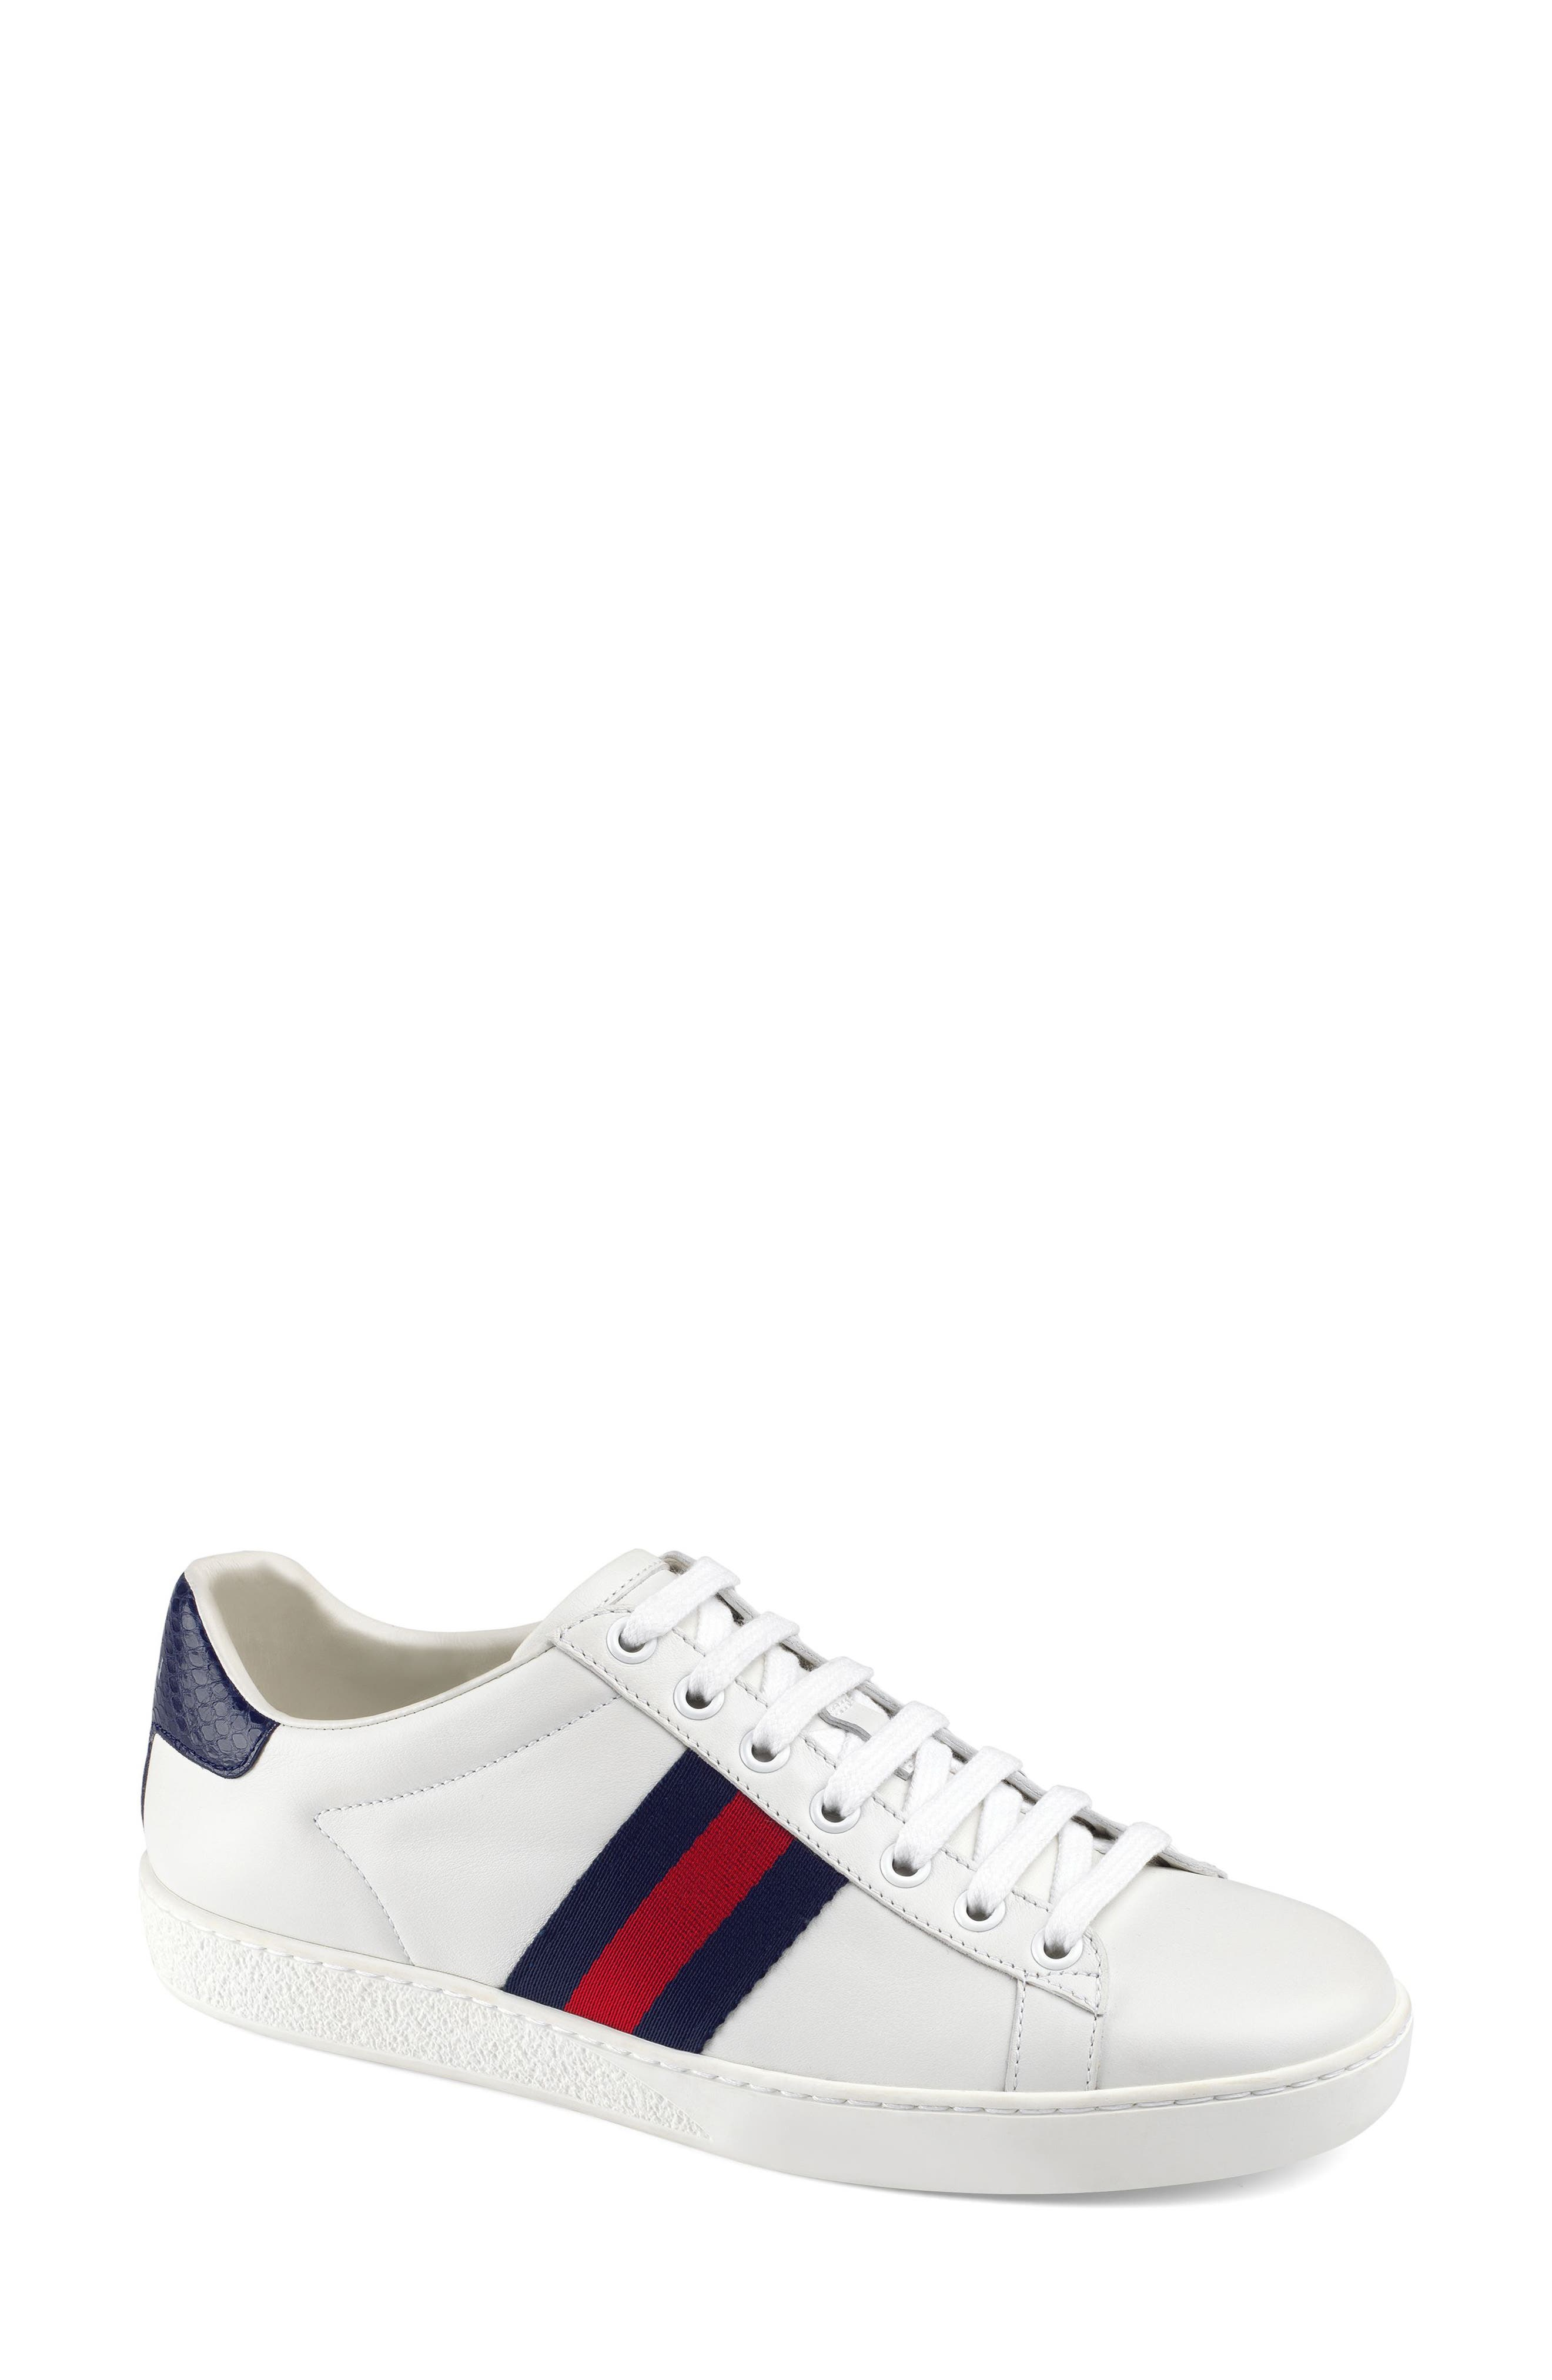 GUCCI, 'New Ace' Sneaker, Main thumbnail 1, color, WHITE/ BLUE